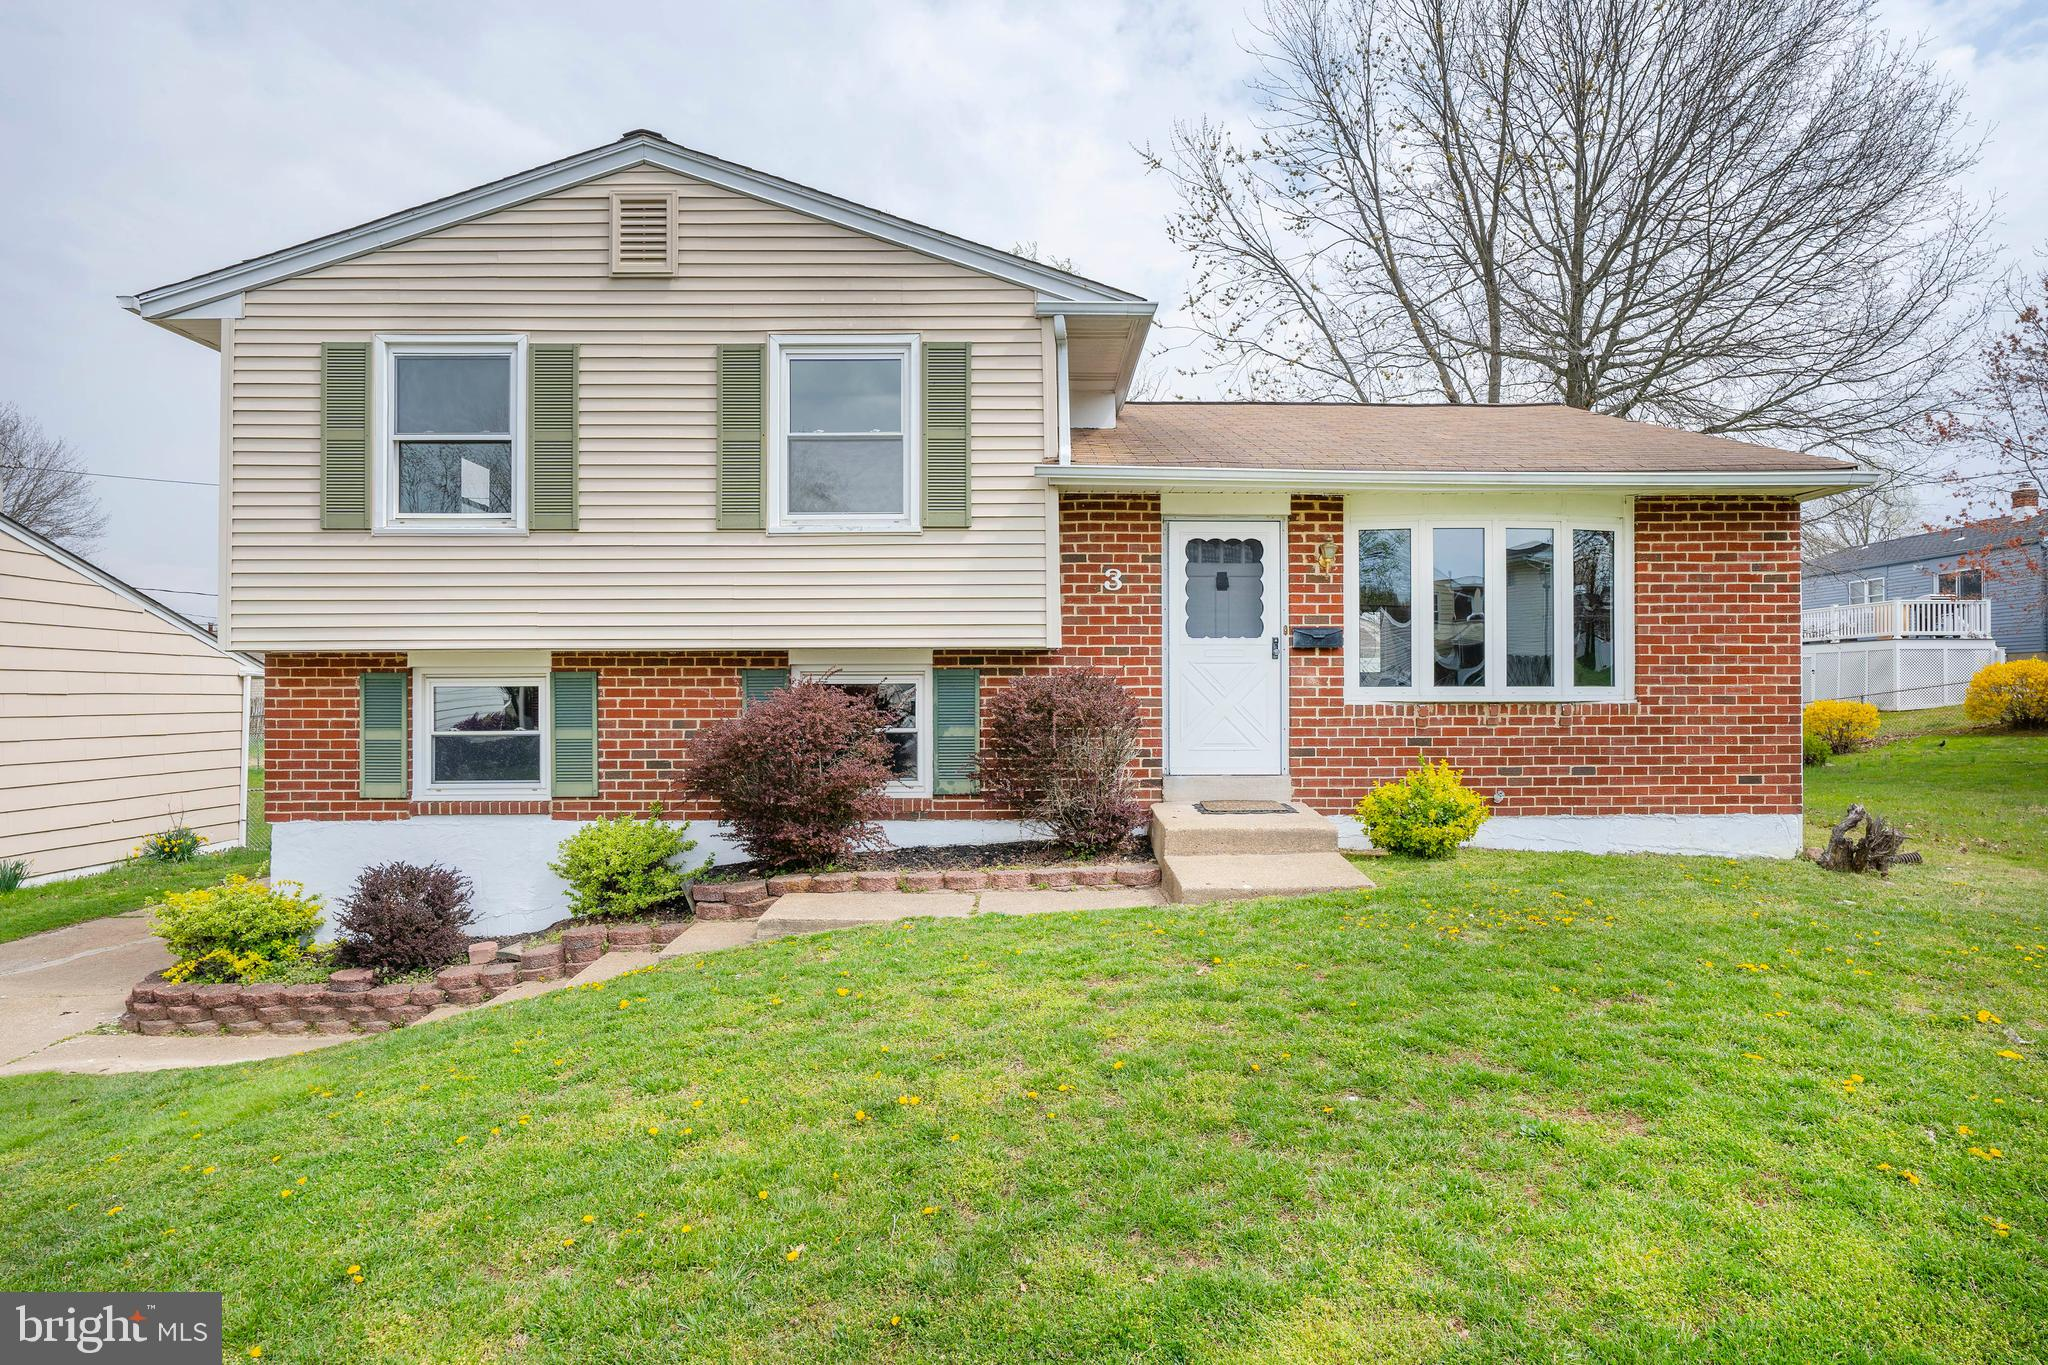 3 Hardy Dr welcomes you! This updated home is ready for new owners! Walk into an open concept living